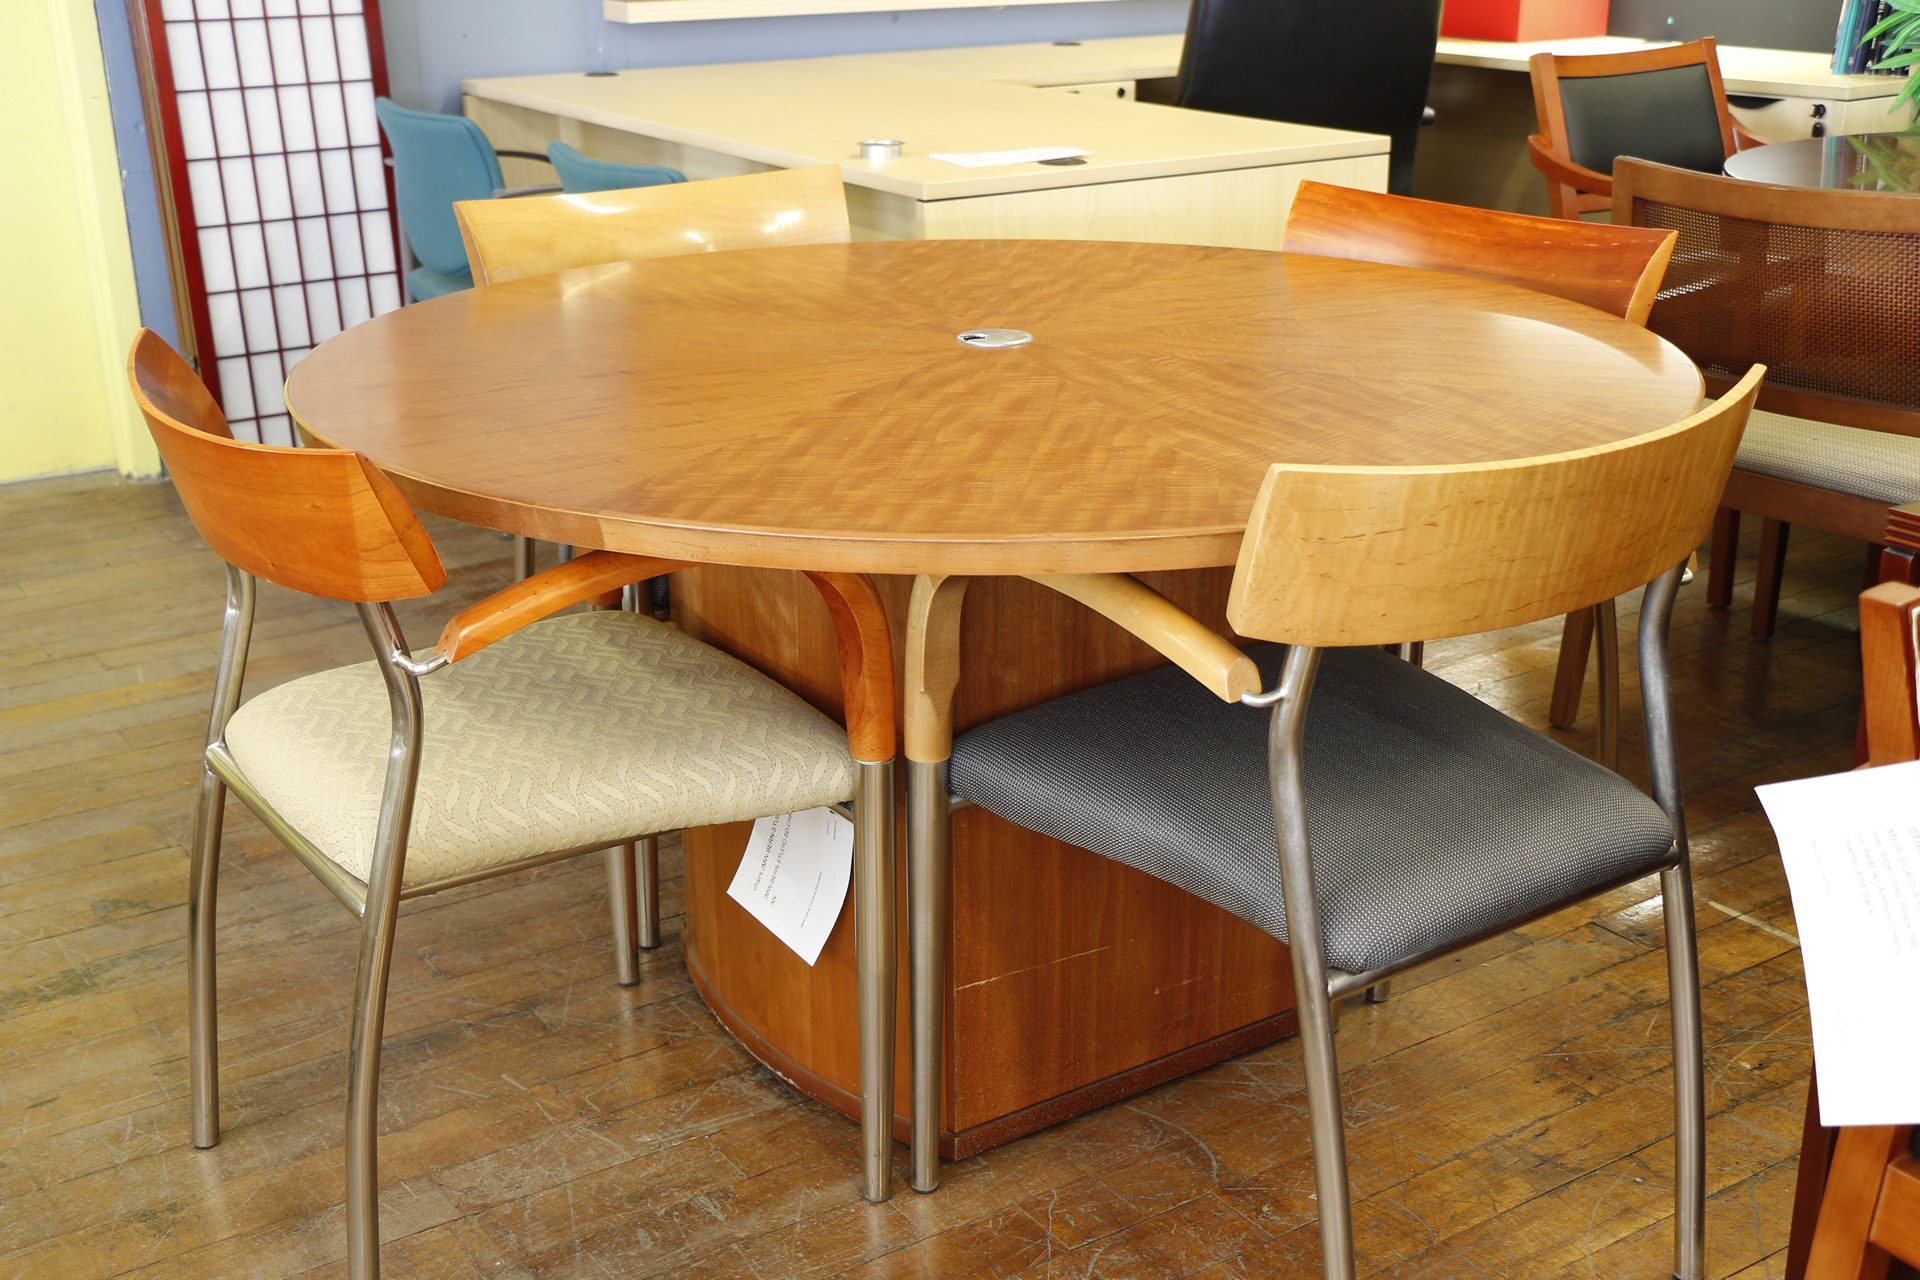 peartreeofficefurniture_peartreeofficefurniture_mg_4007.jpg